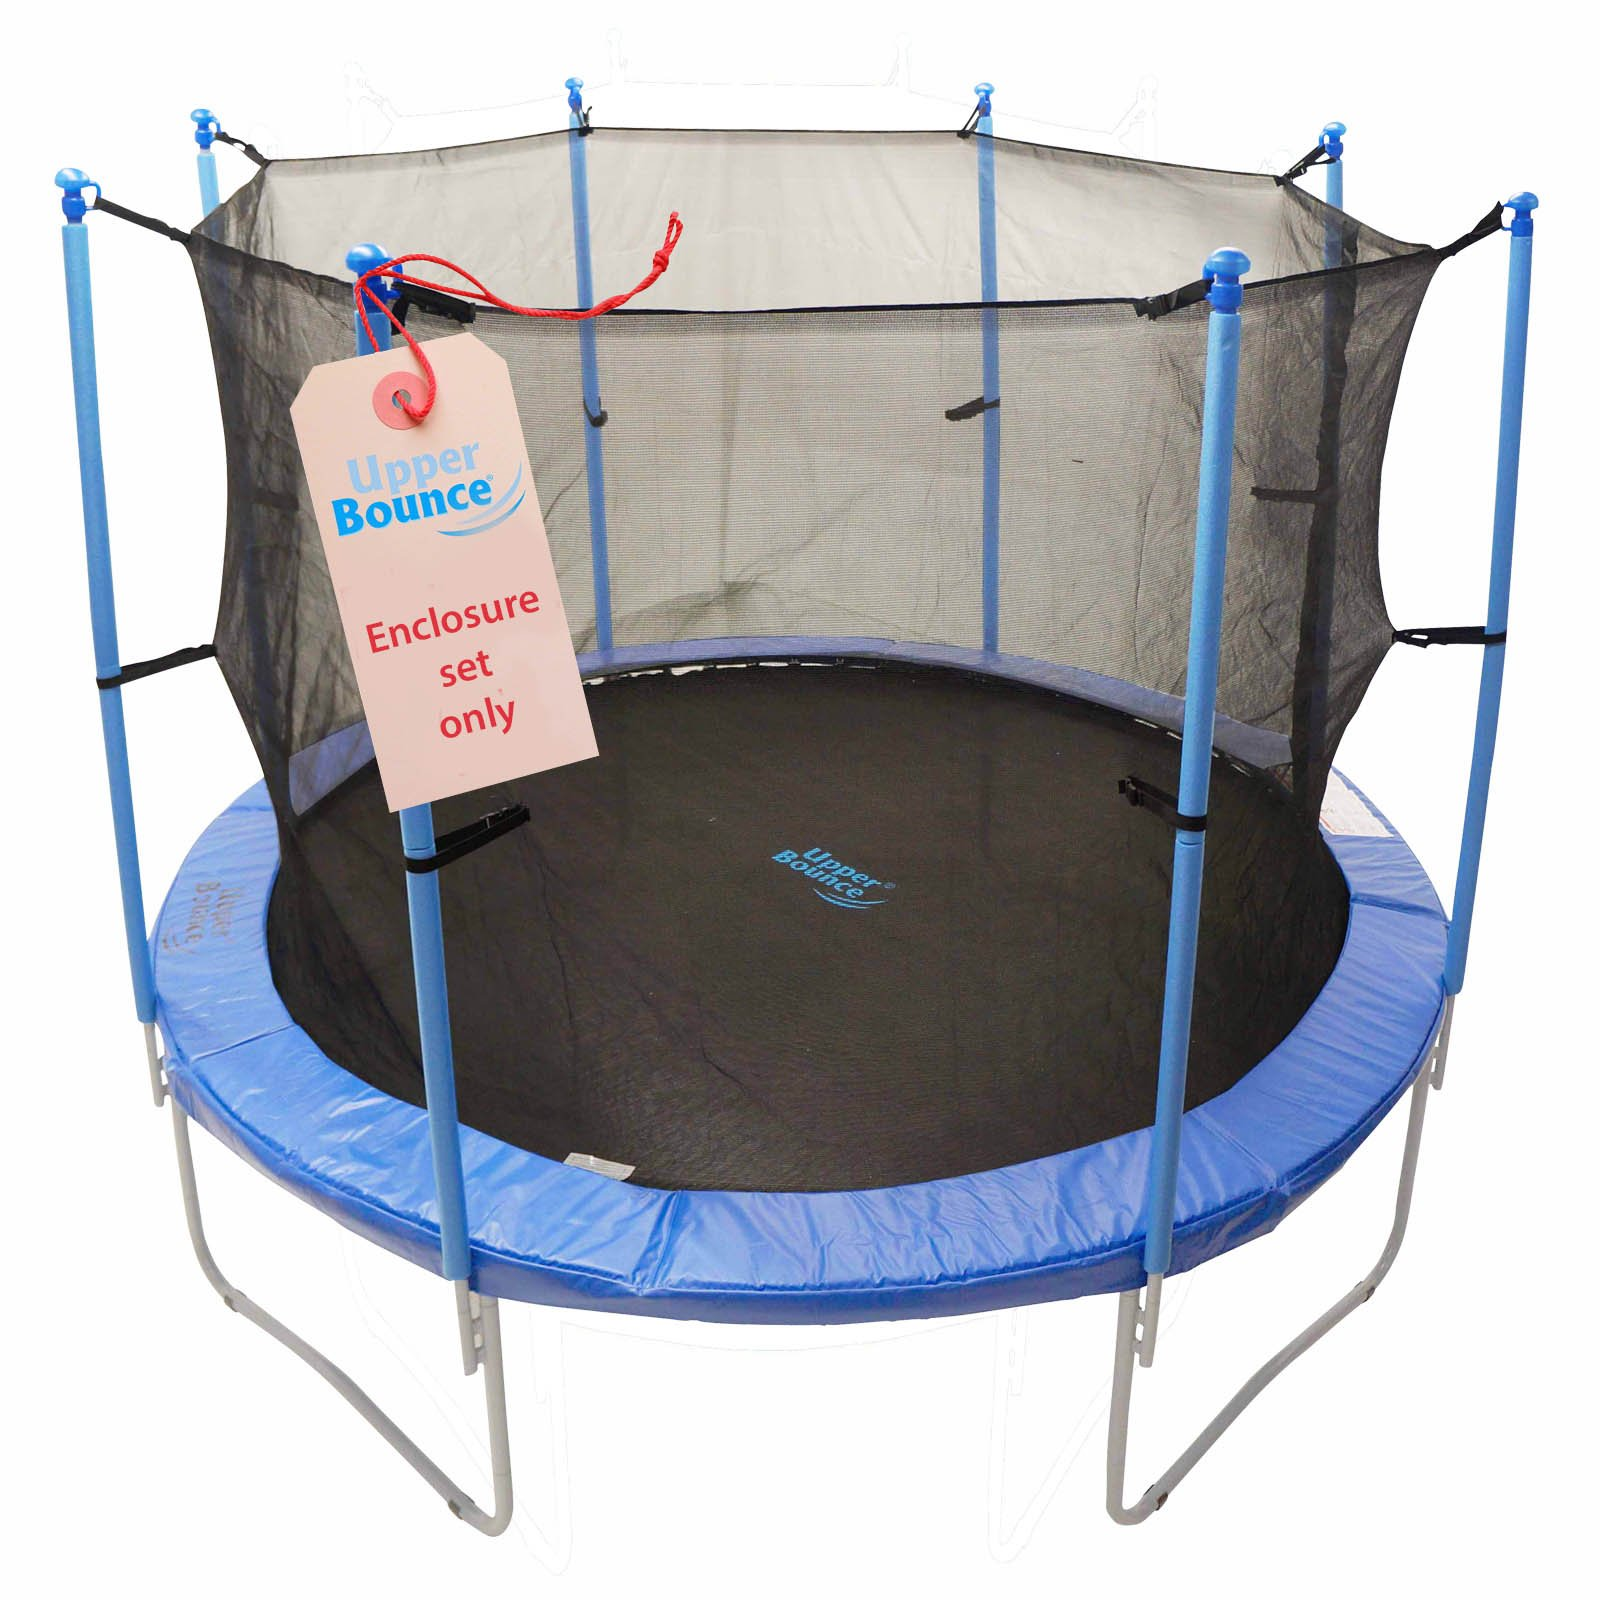 Upper Bounce 6 Pole Trampoline Enclosure Set to fit 8 FT. Trampoline Frames with set of 3 or 6 W-Shaped Legs (Trampoline Not Included) by Upper Bounce